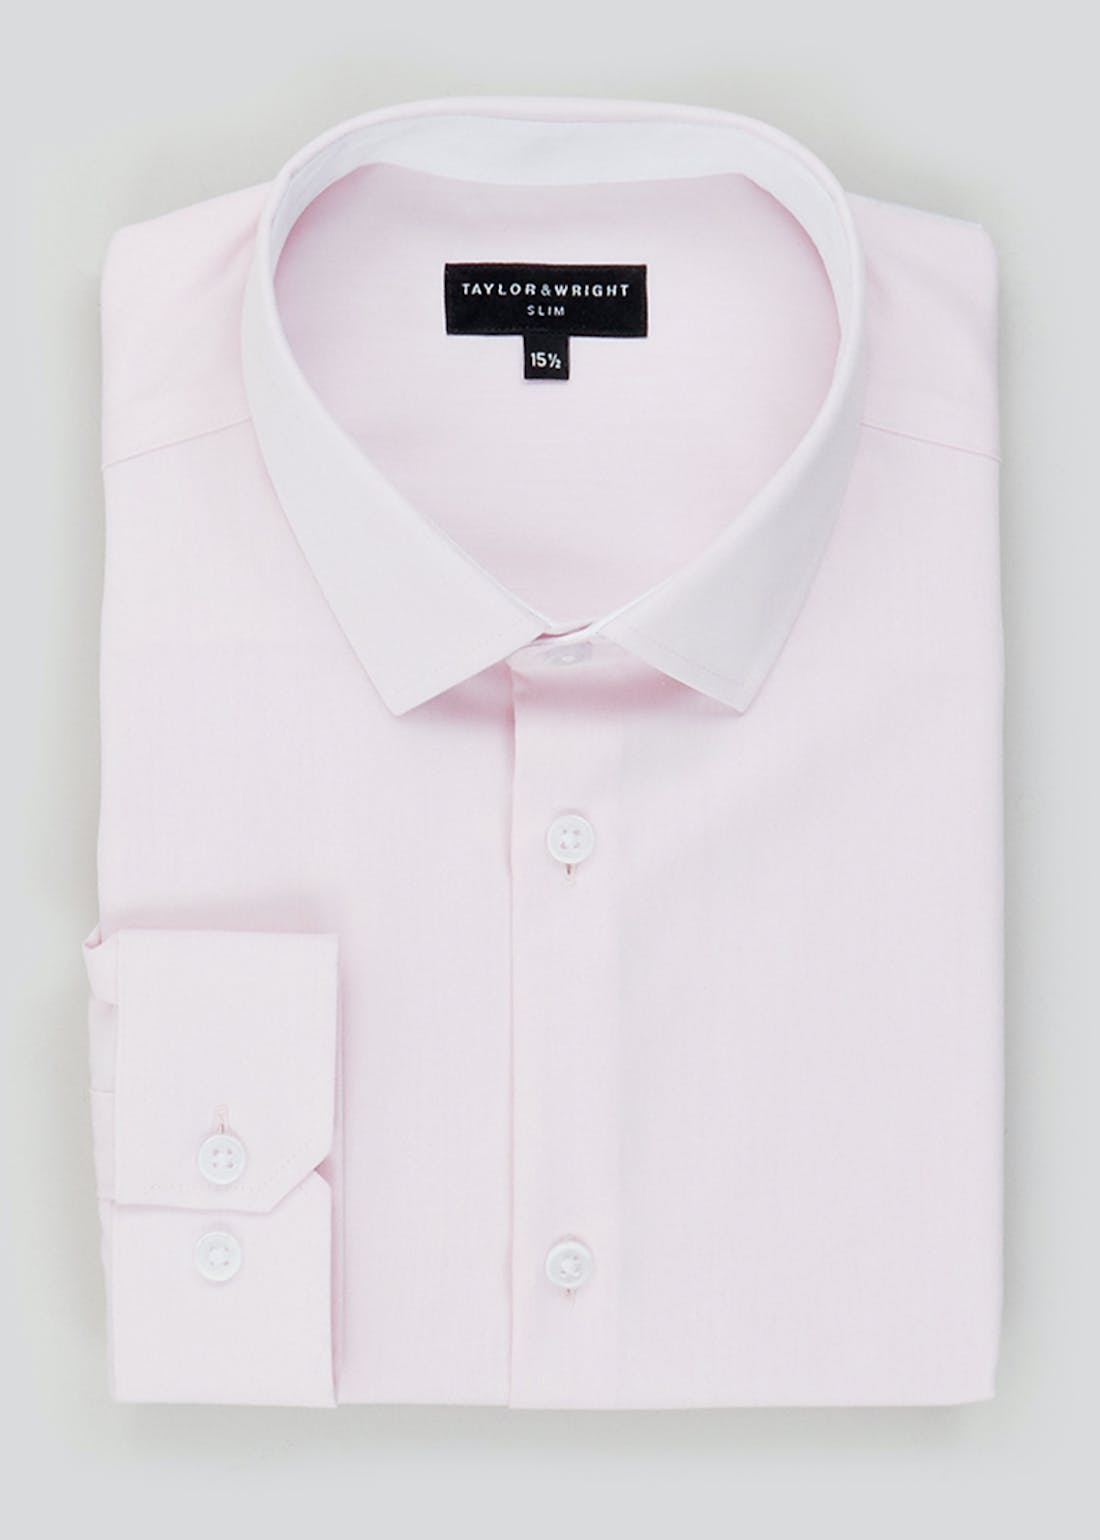 Taylor & Wright Long Sleeve Slim Fit Shirt